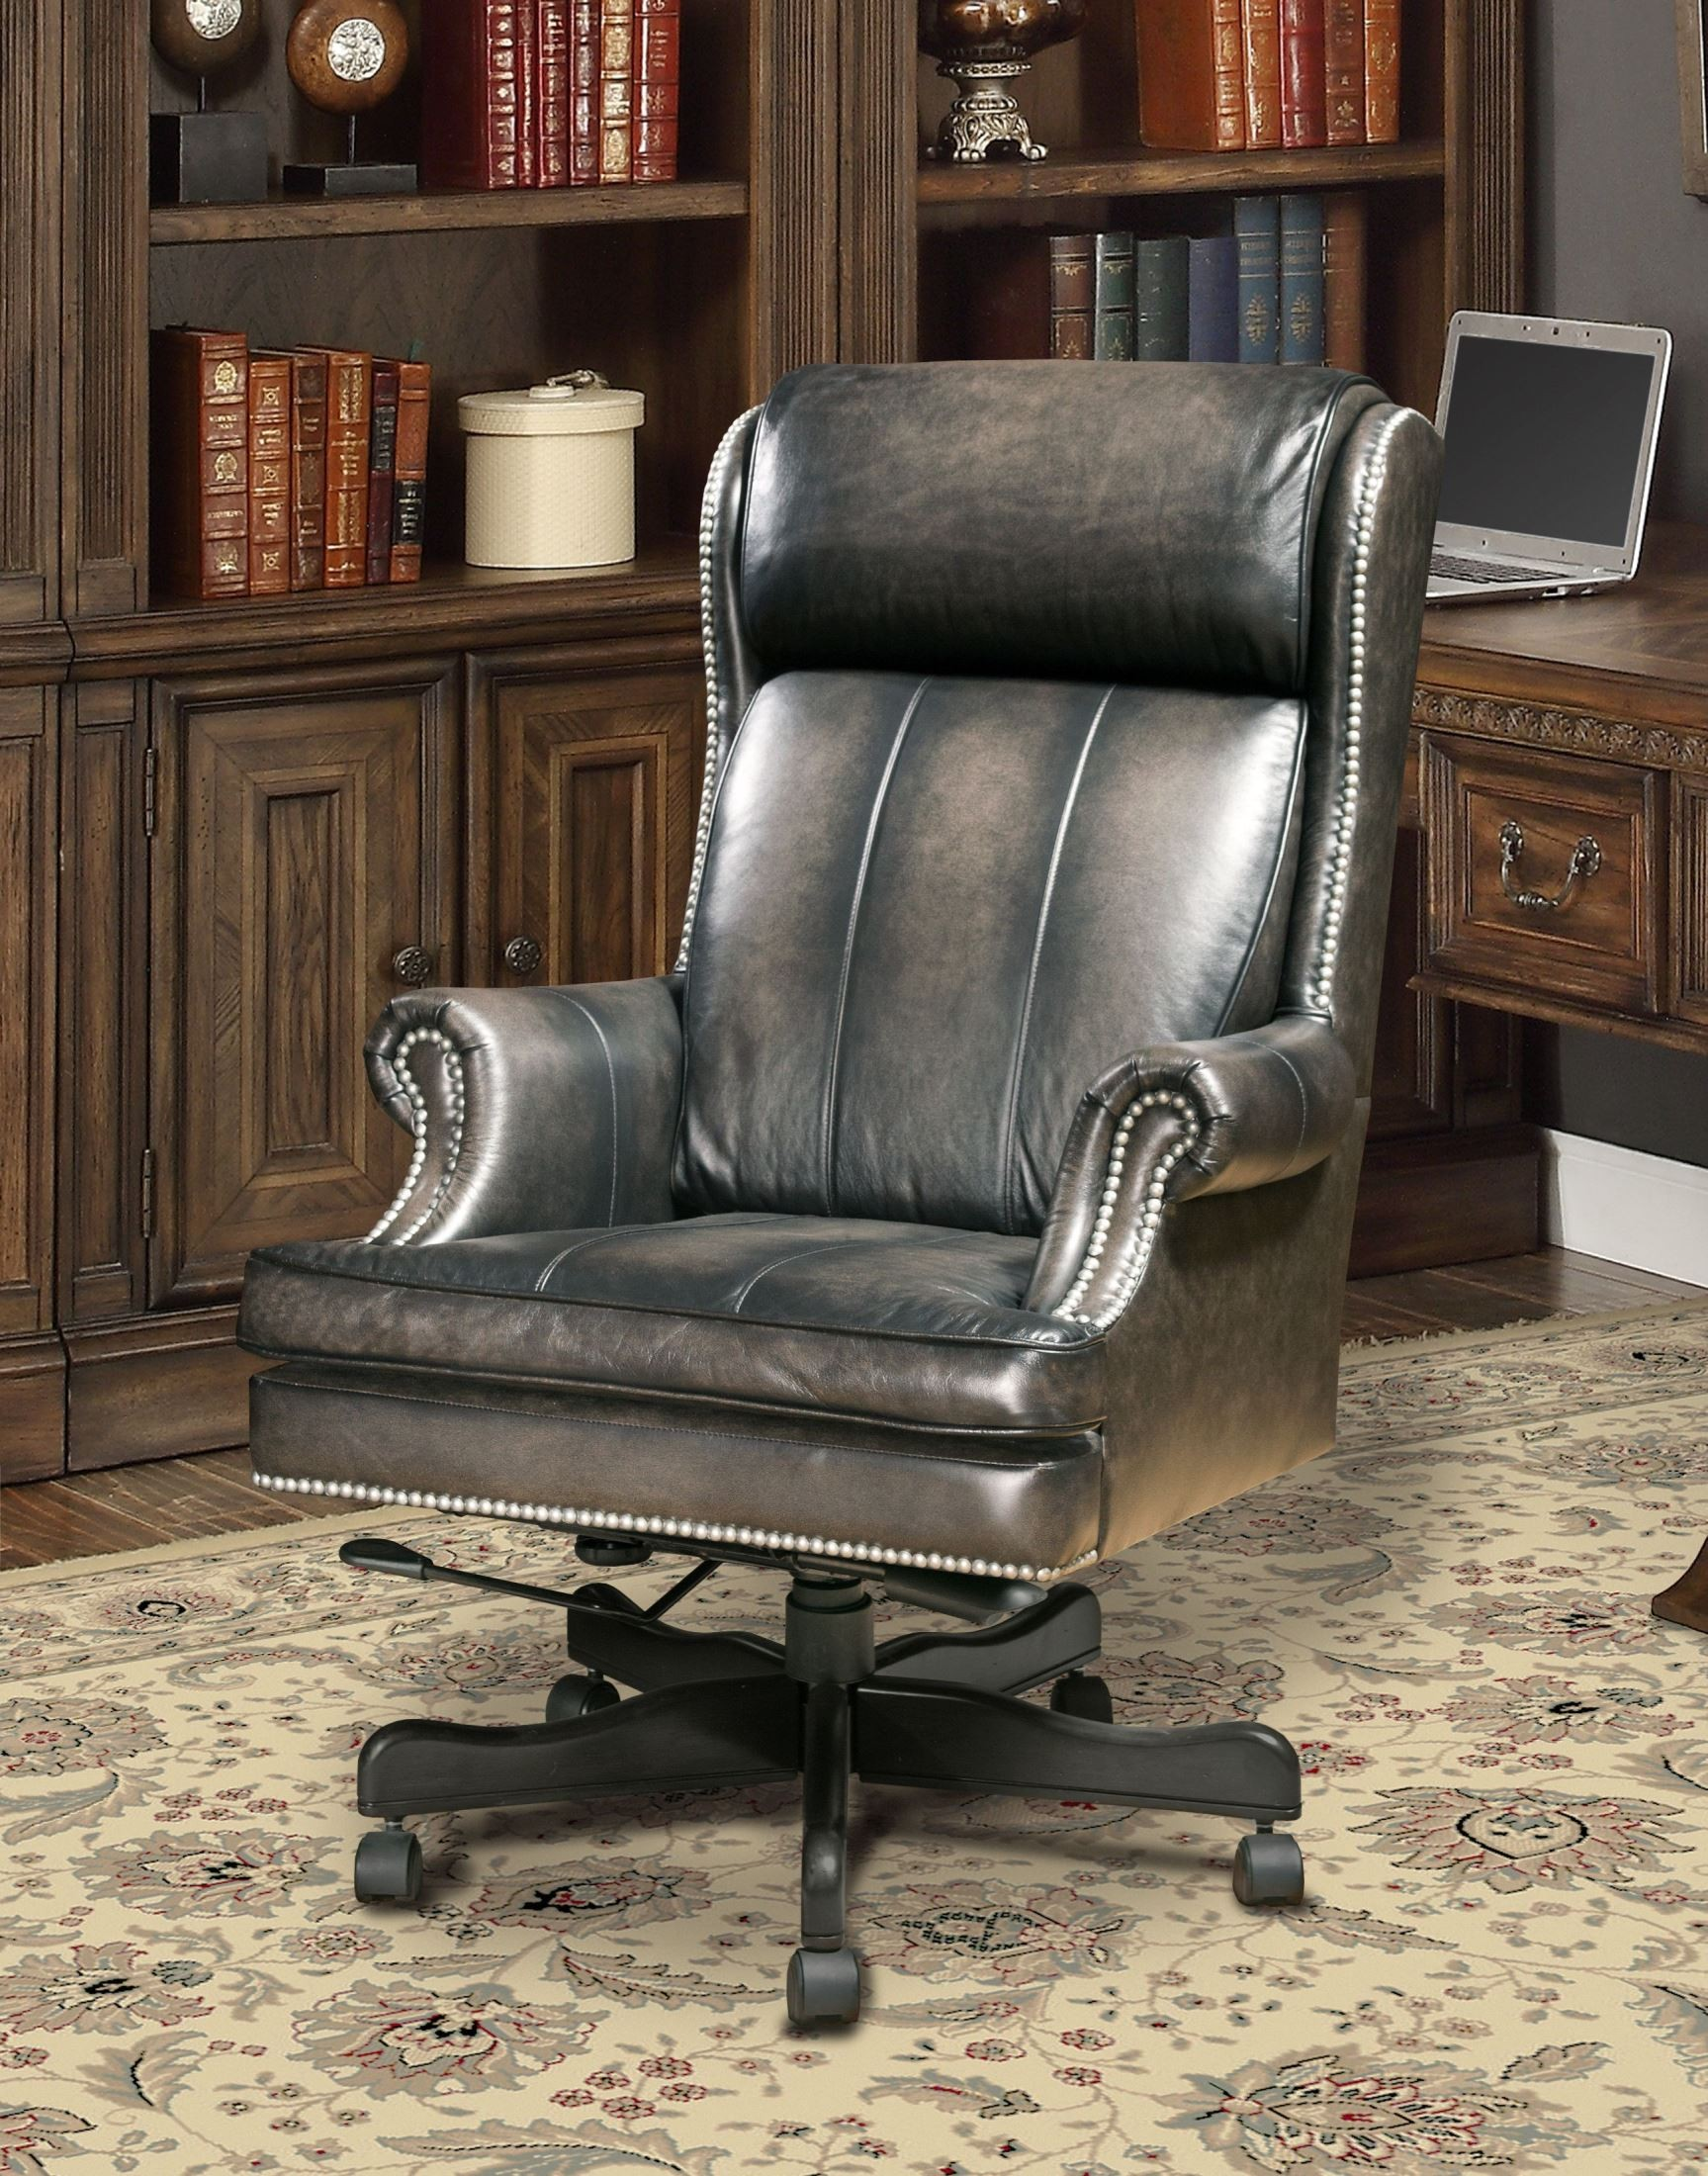 swivel chair price philippines tullsta cover smoke wipe leather desk from parker living coleman